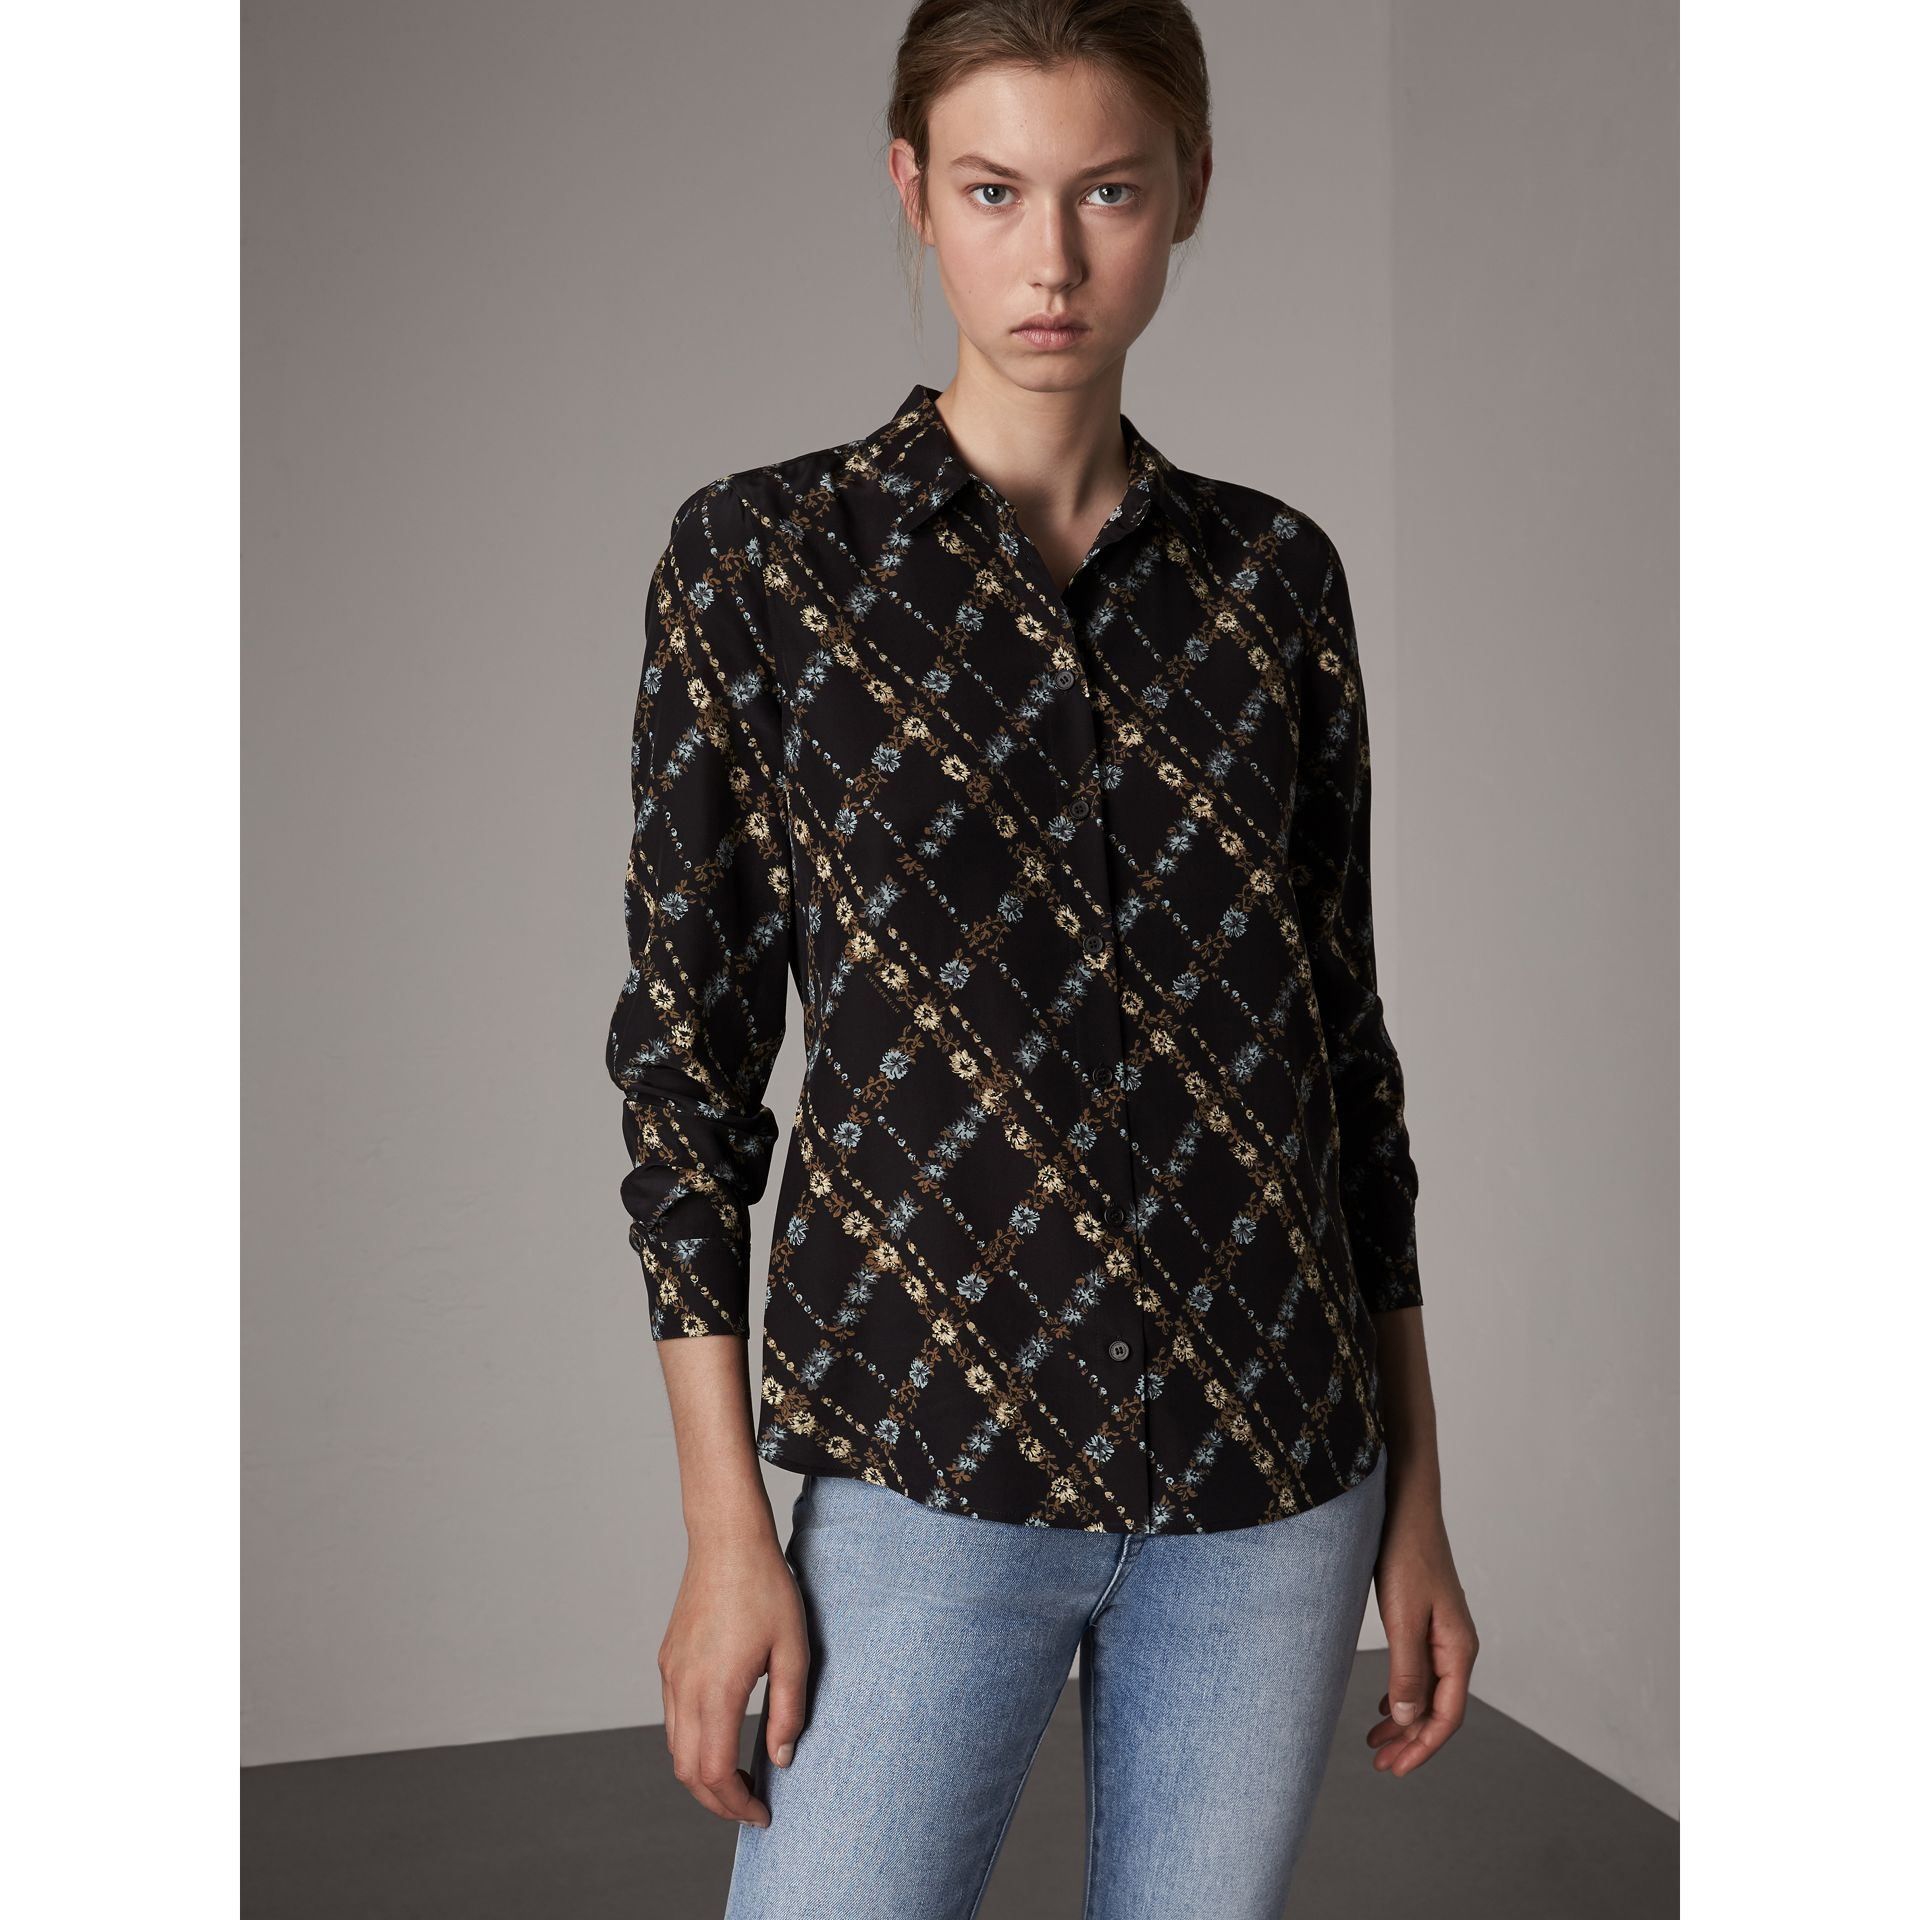 Lattice Floral Print Silk Shirt in Black - Women | Burberry - gallery image 1